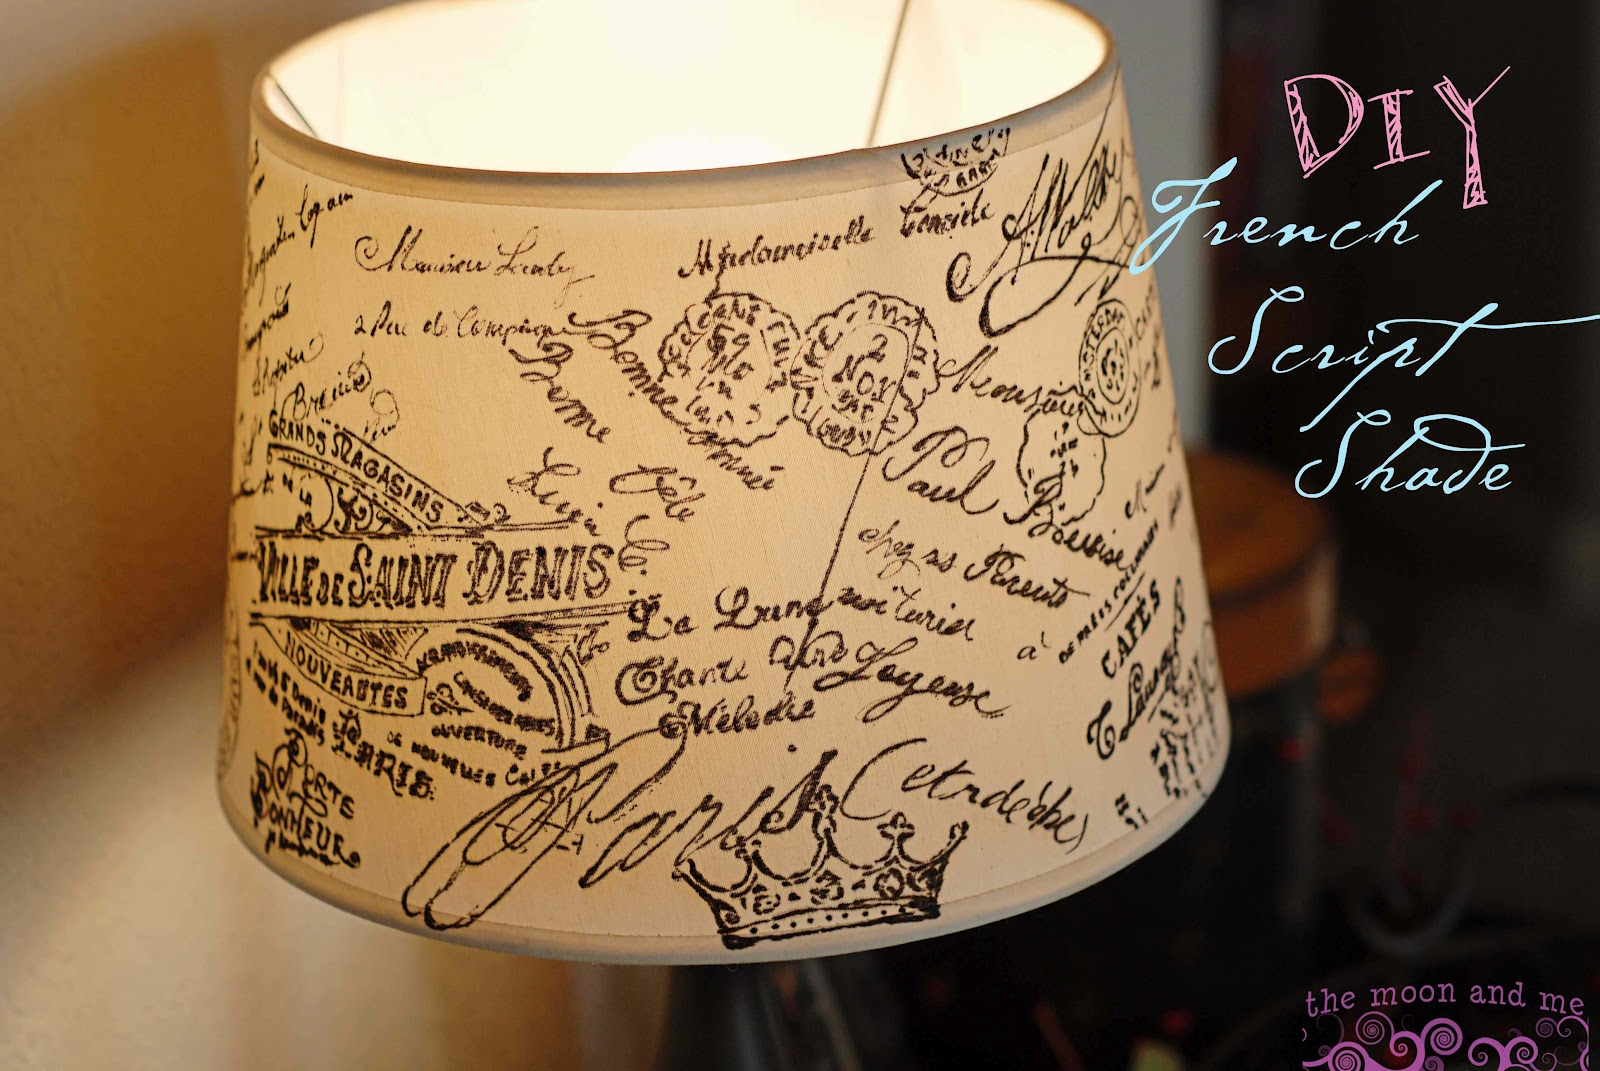 The moon and me diy french script lampshade copycat diy french script lampshade copycat aloadofball Image collections